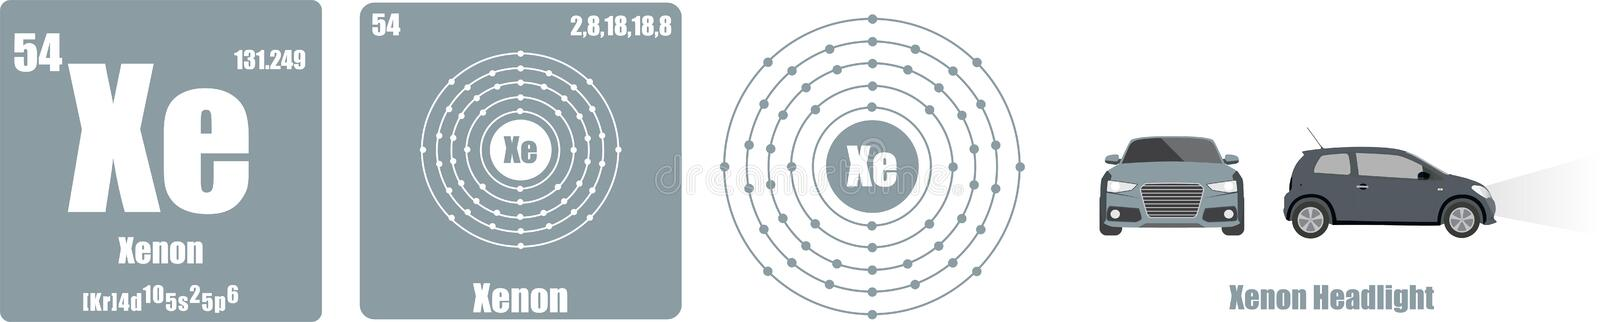 Periodic Table of element group VIII The noble gases Xenon royalty free illustration